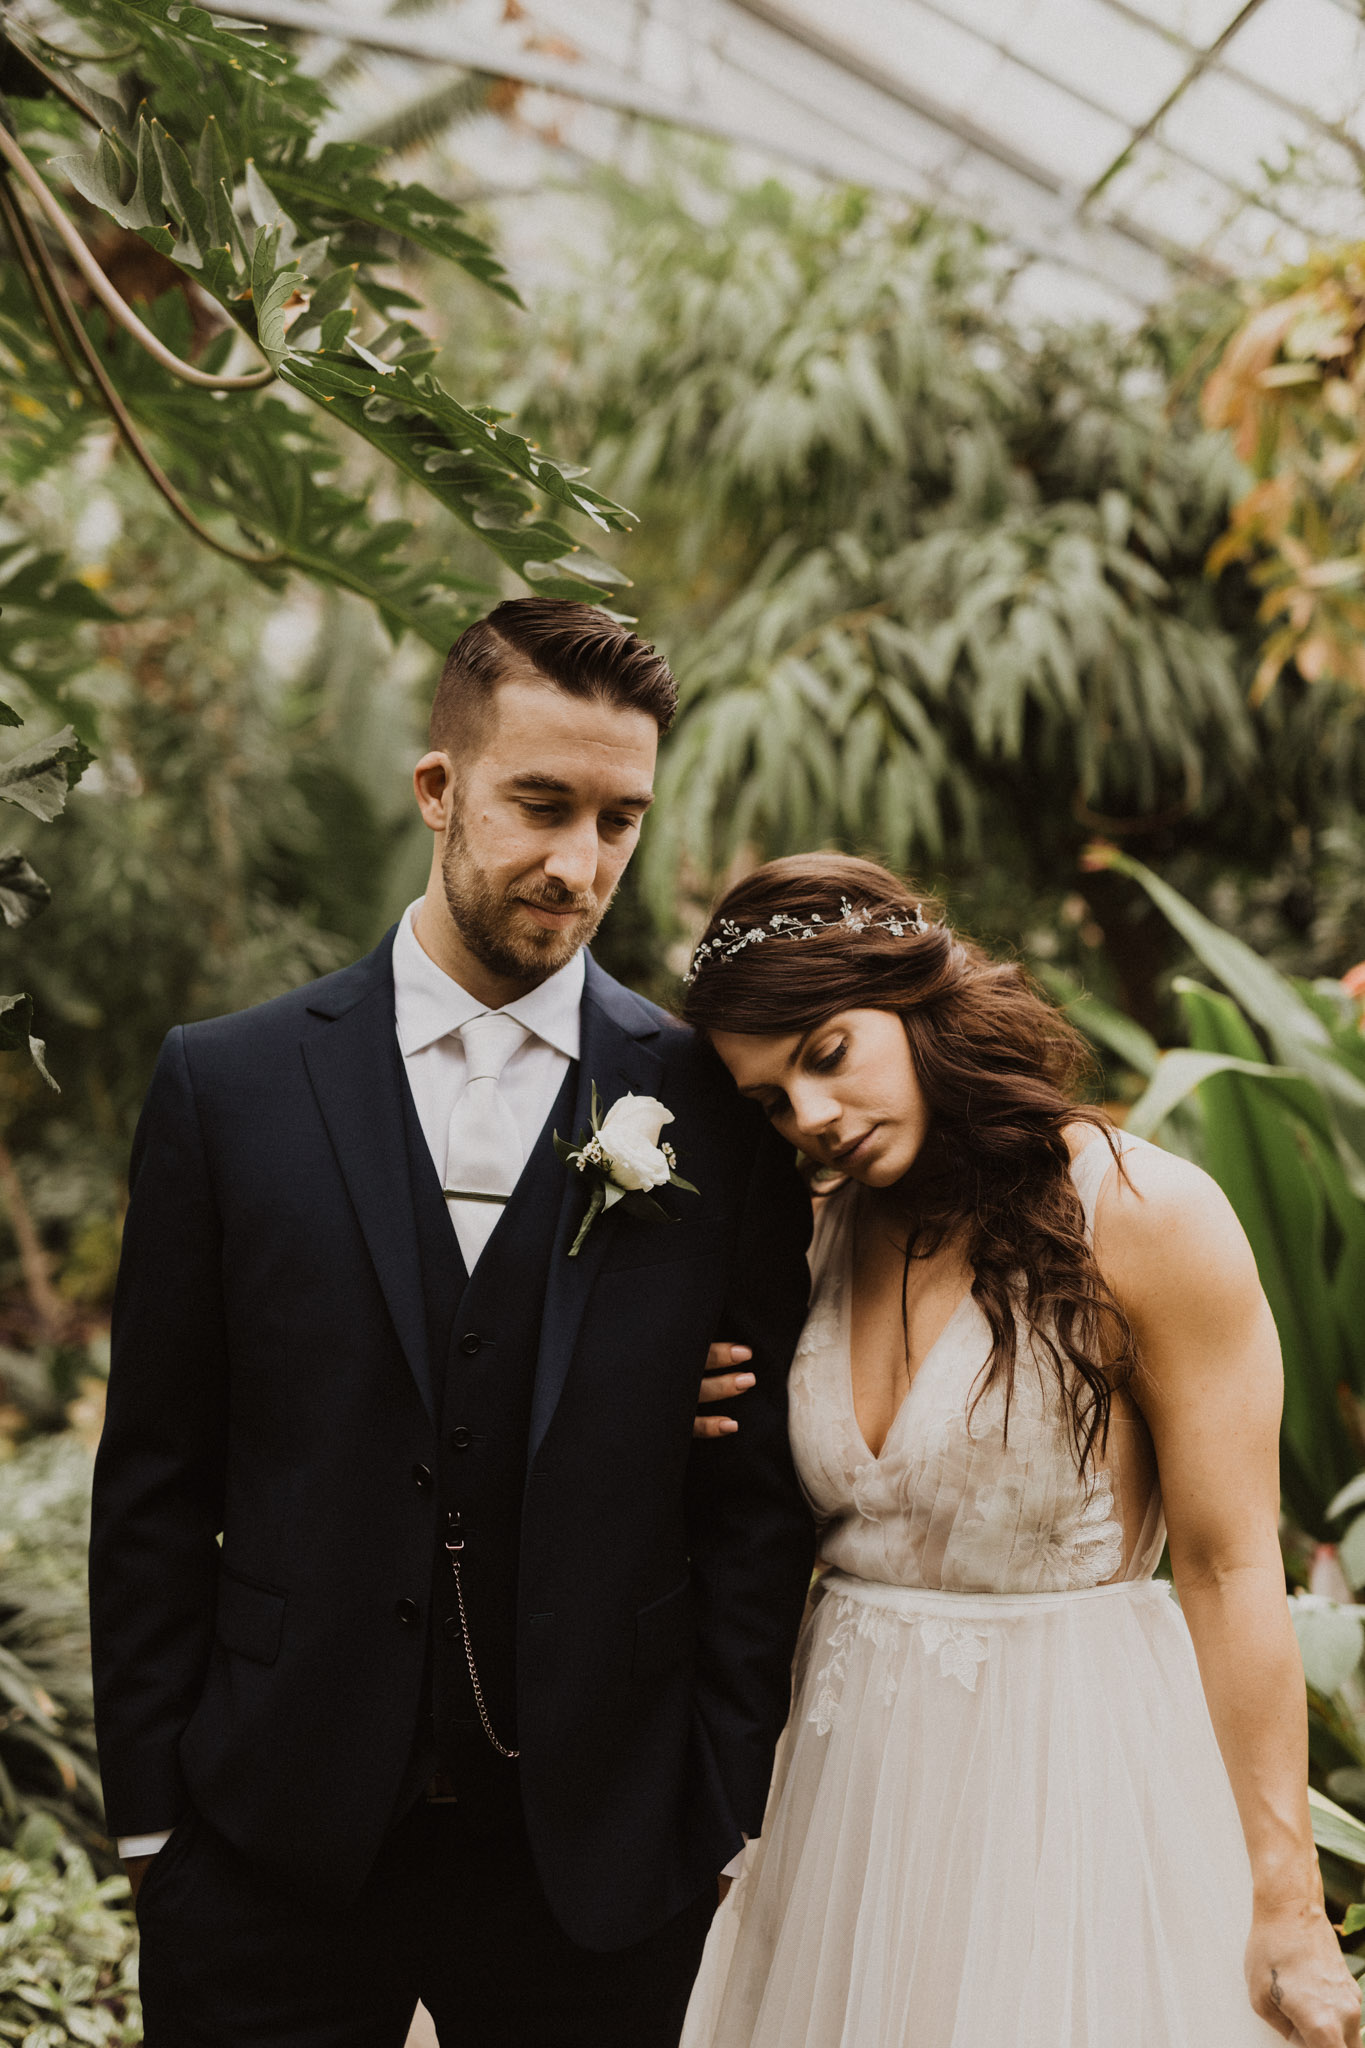 Greenhouse Elopement Allan Gardens Toronto - bride and groom embrace